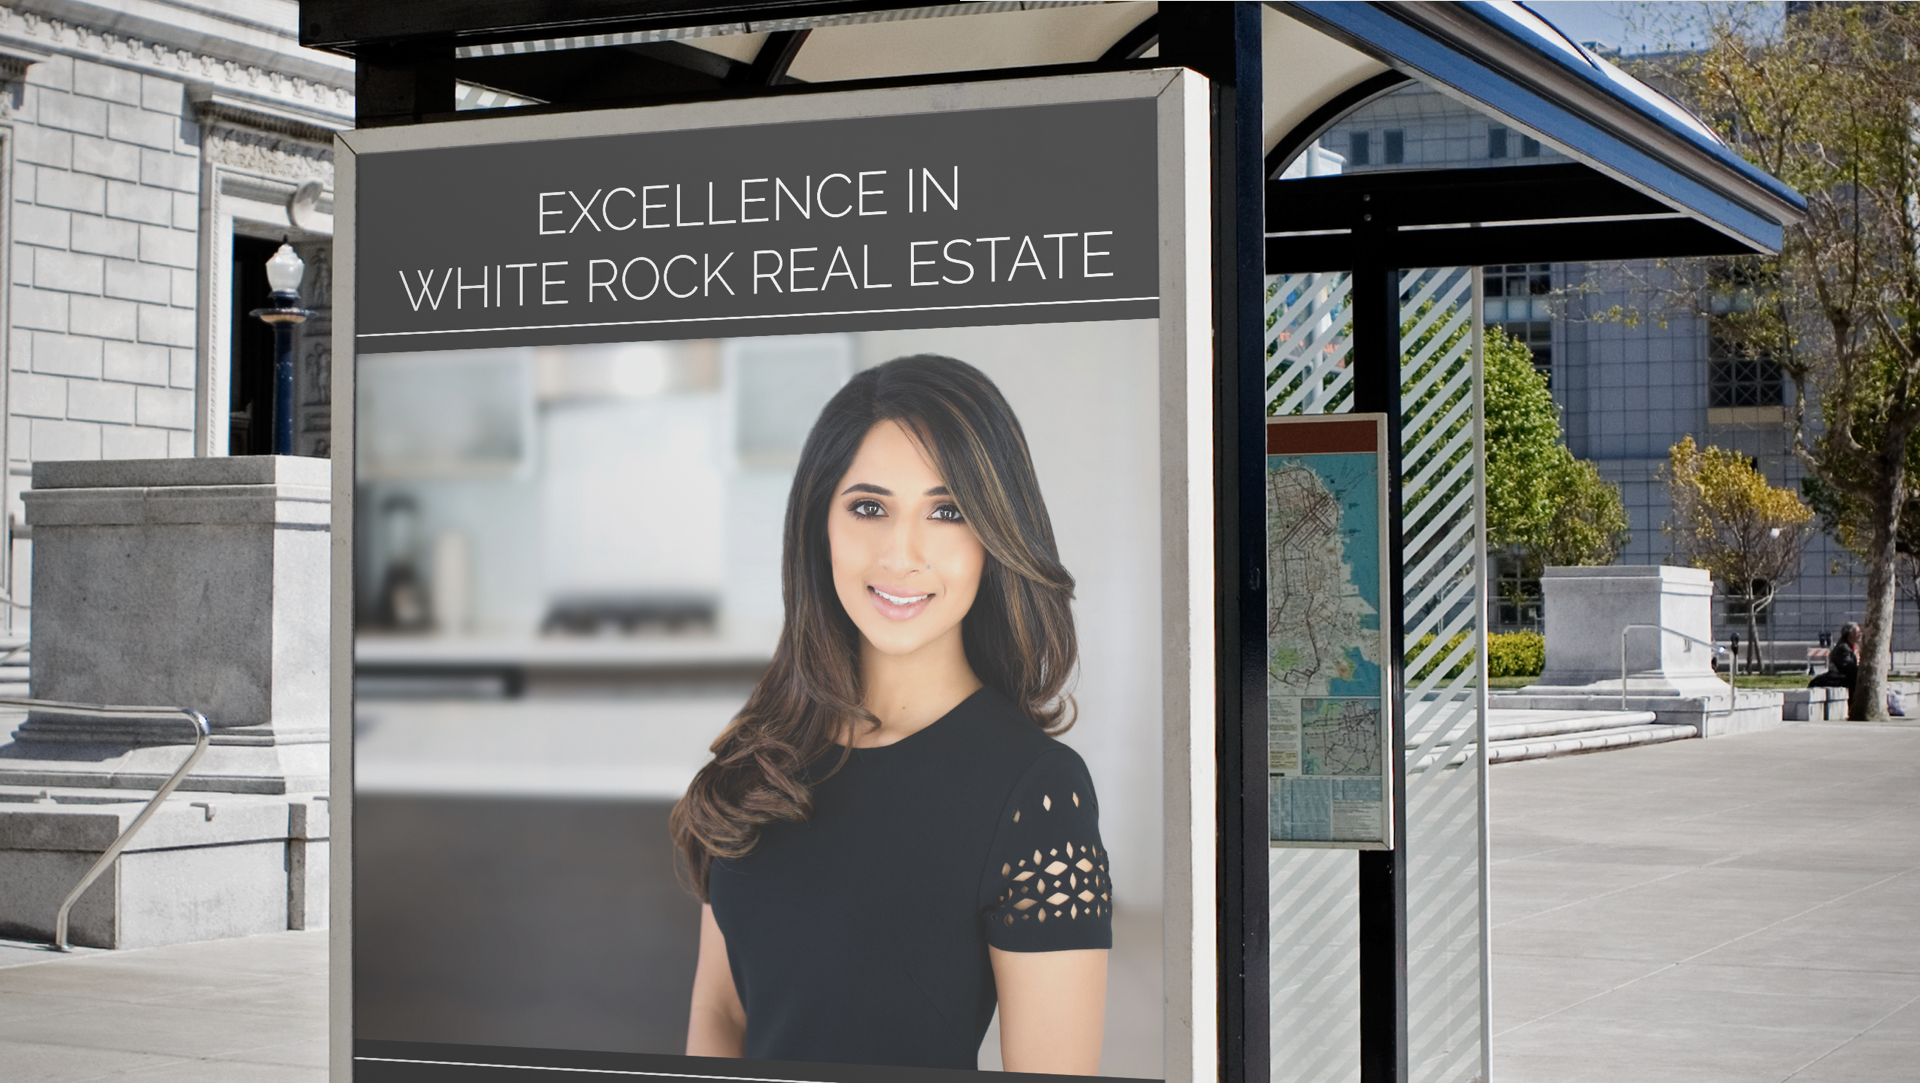 Bus Shelter Ad Luxury Millionaire Real Estate Realtor White Rock Sidra Subzwari